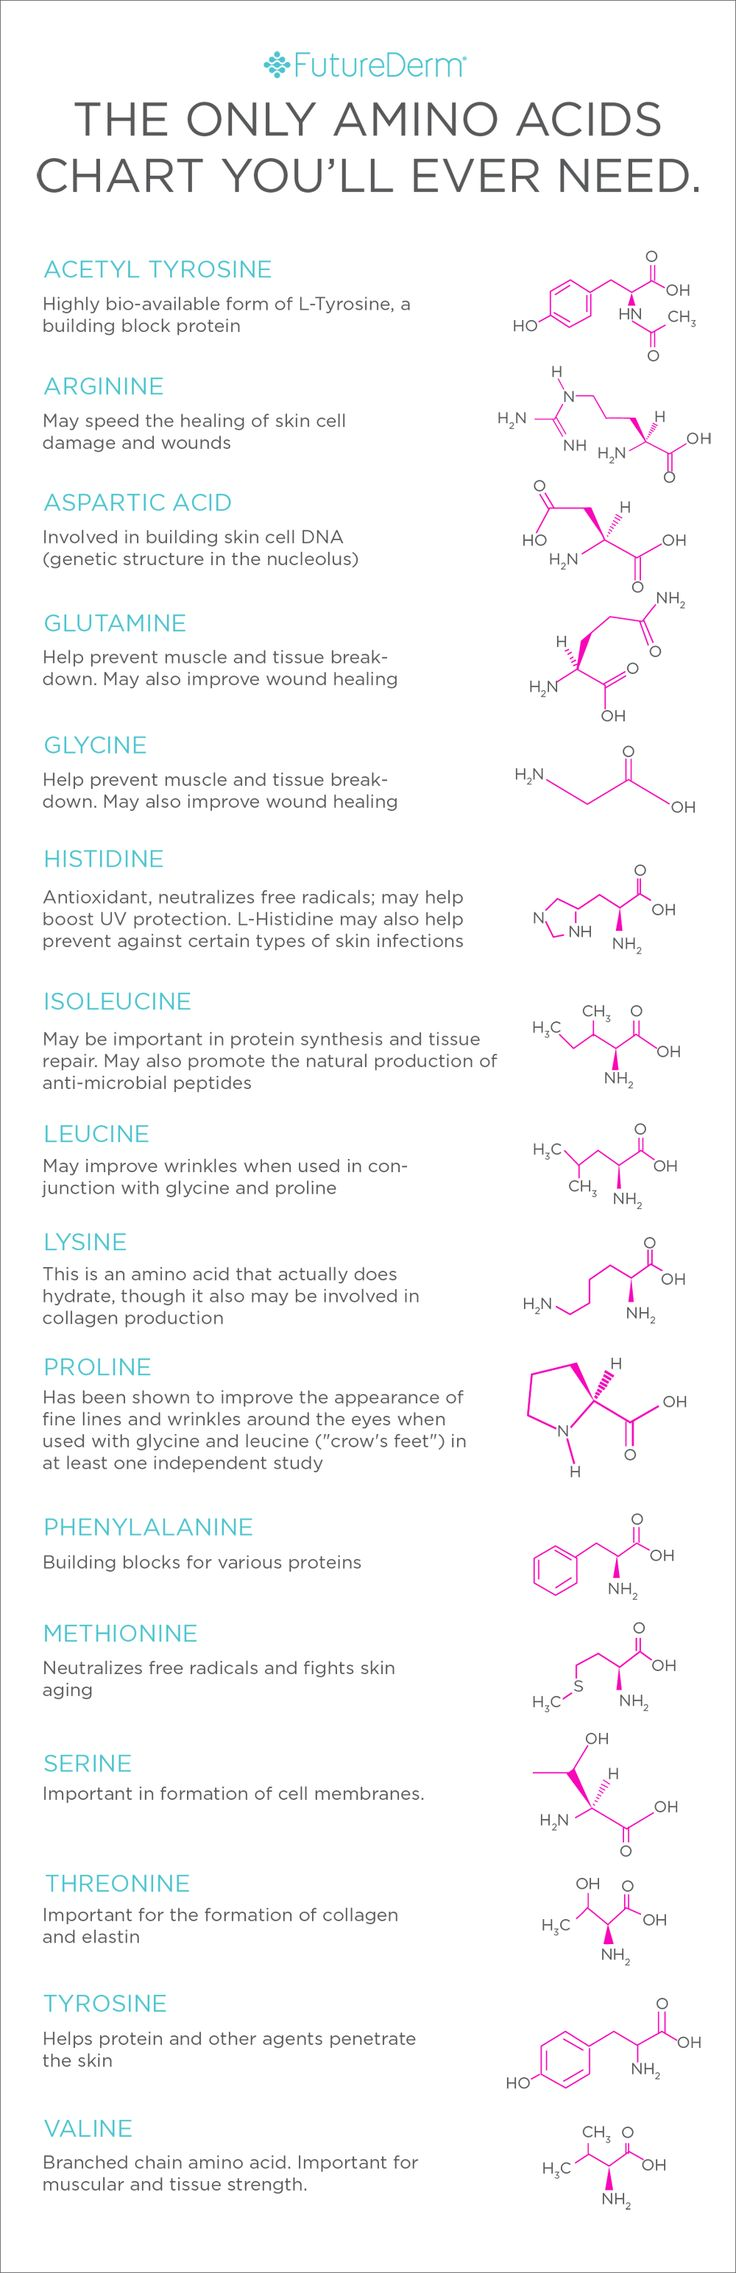 Do Amino Acids Actually Do Anything in Skin Care